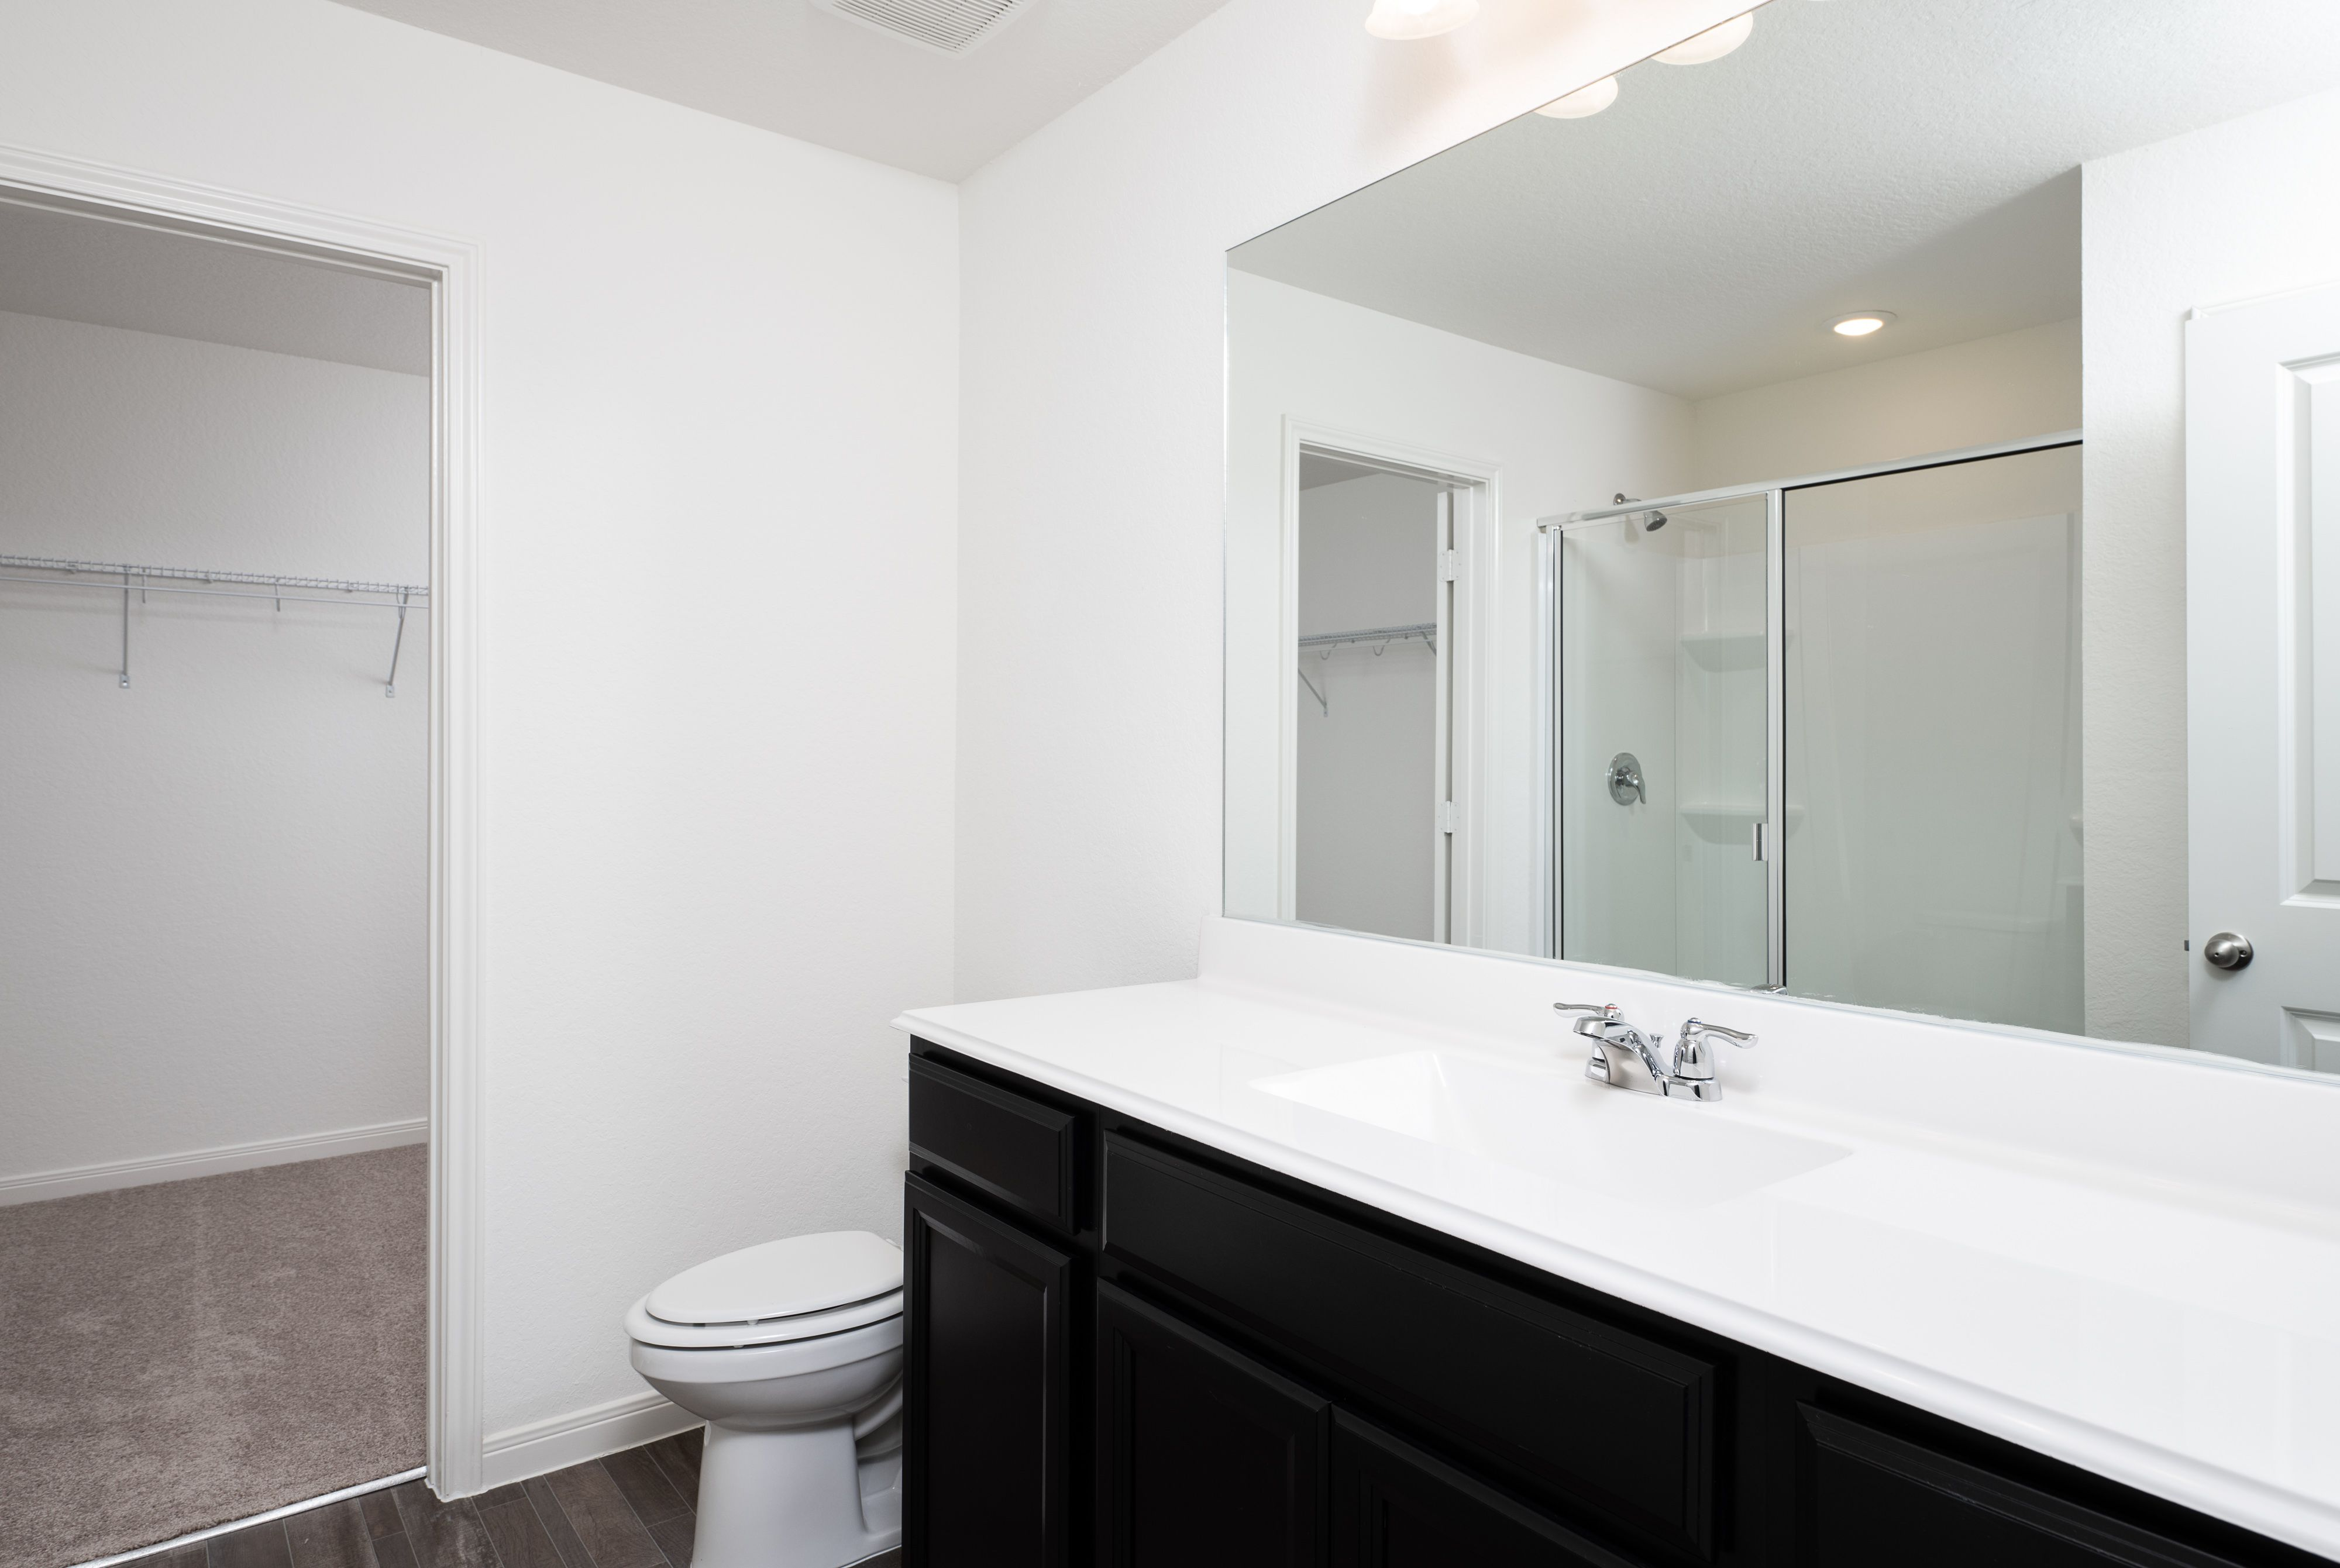 Bathroom featured in the Magellan By Starlight Homes in San Antonio, TX